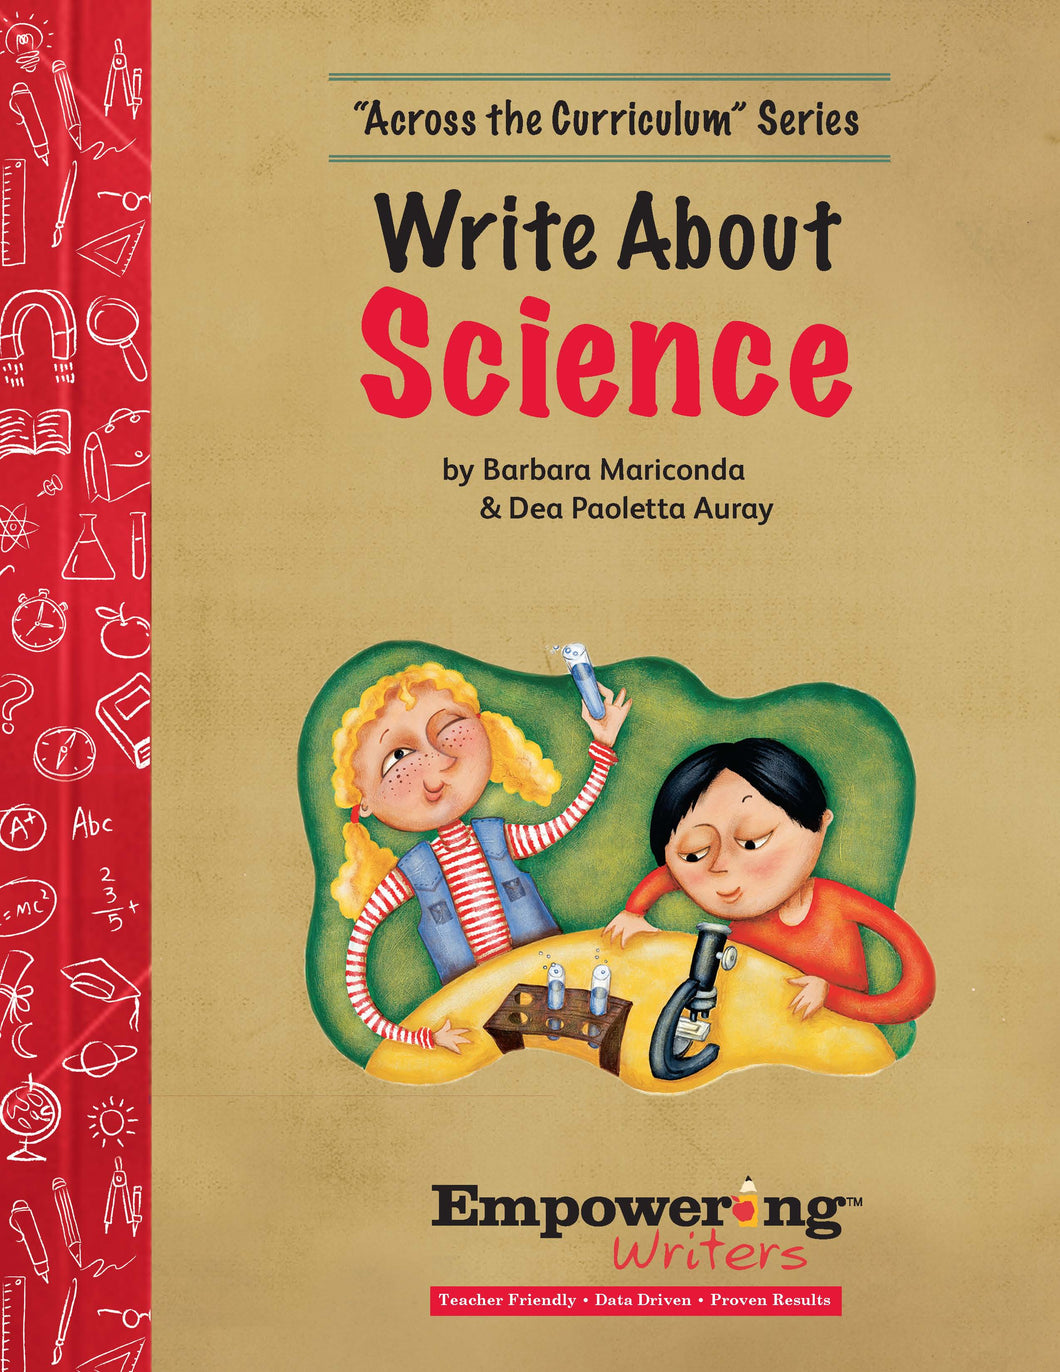 Write About Science